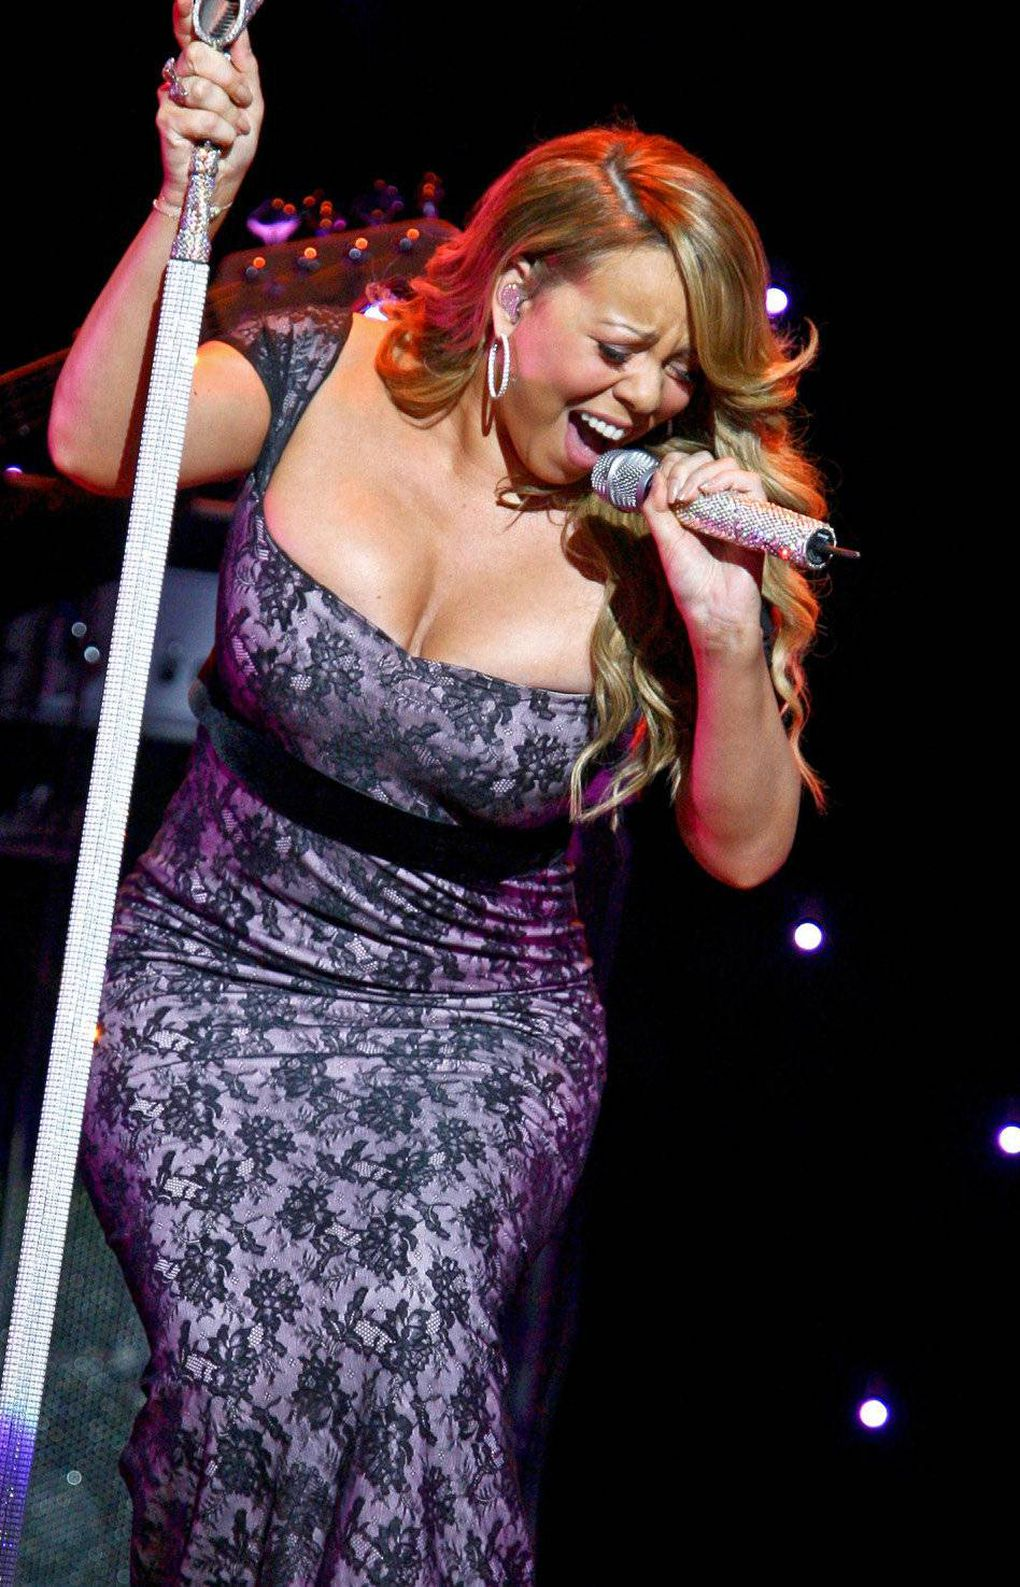 New pictures of mariah carey pregnant Celebrity Photos, Celebrity Pictures, Celebrity Pics E!